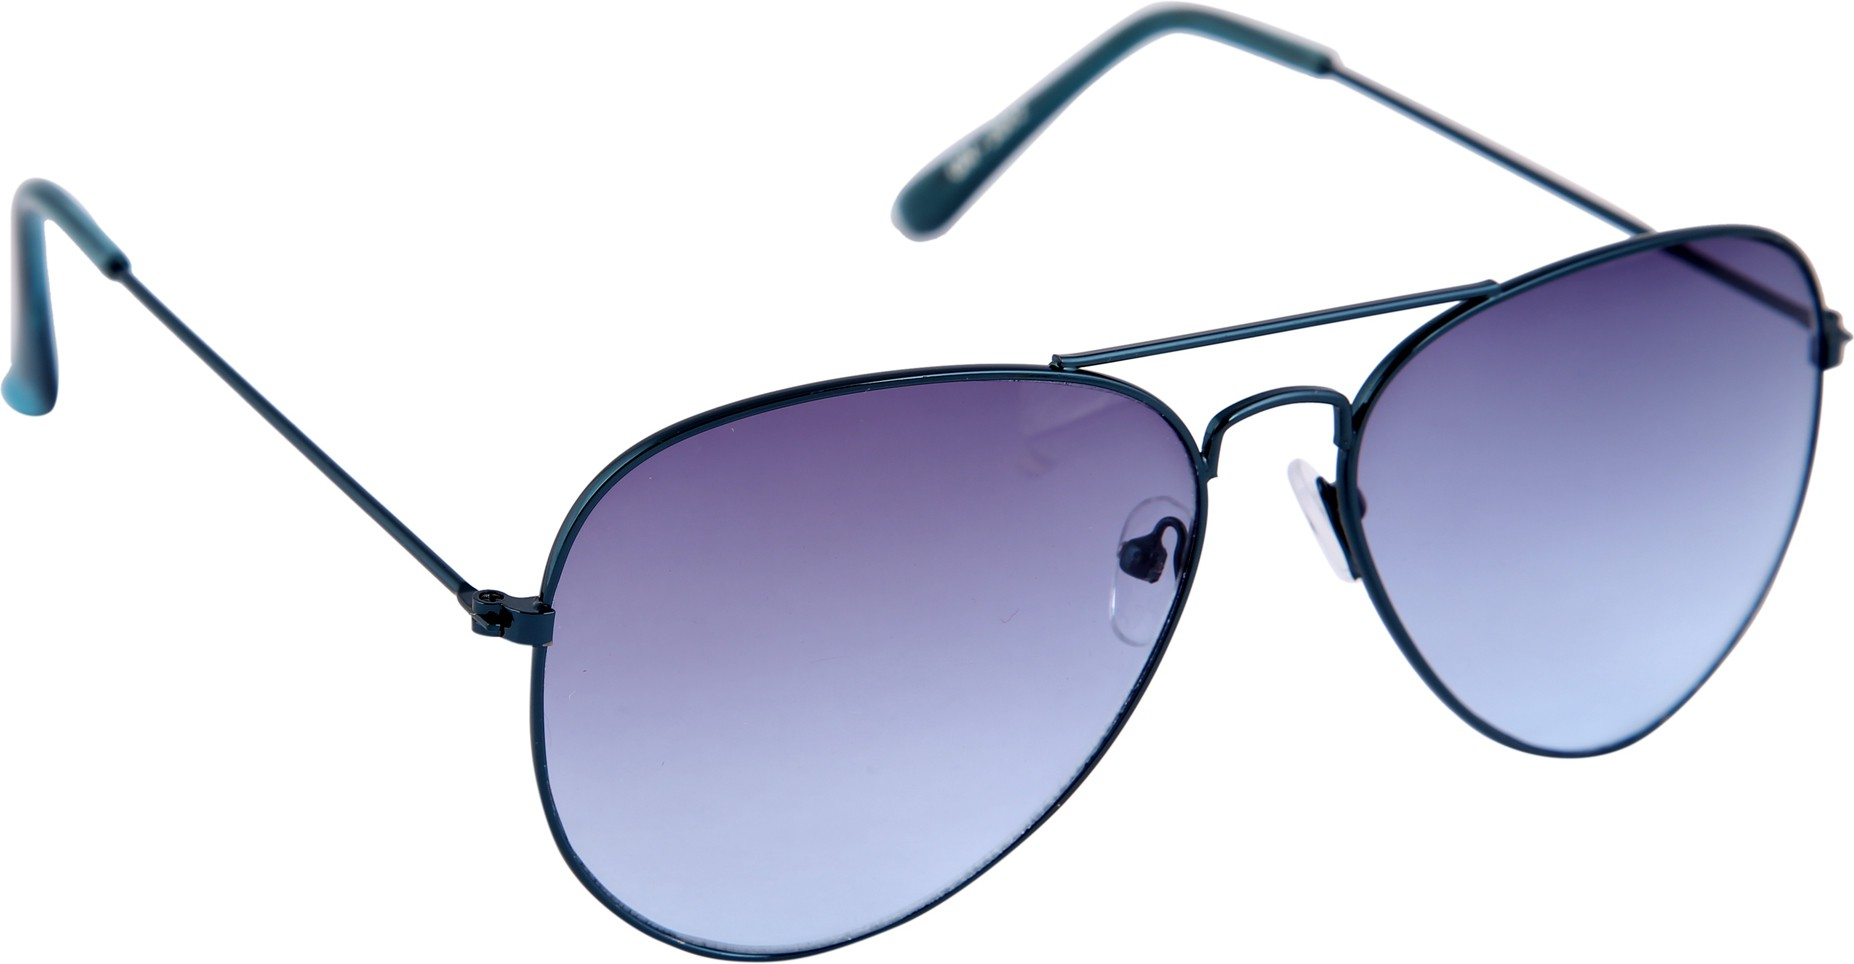 Deals - Delhi - Abster & more <br> Aviator Sunglasses<br> Category - sunglasses<br> Business - Flipkart.com